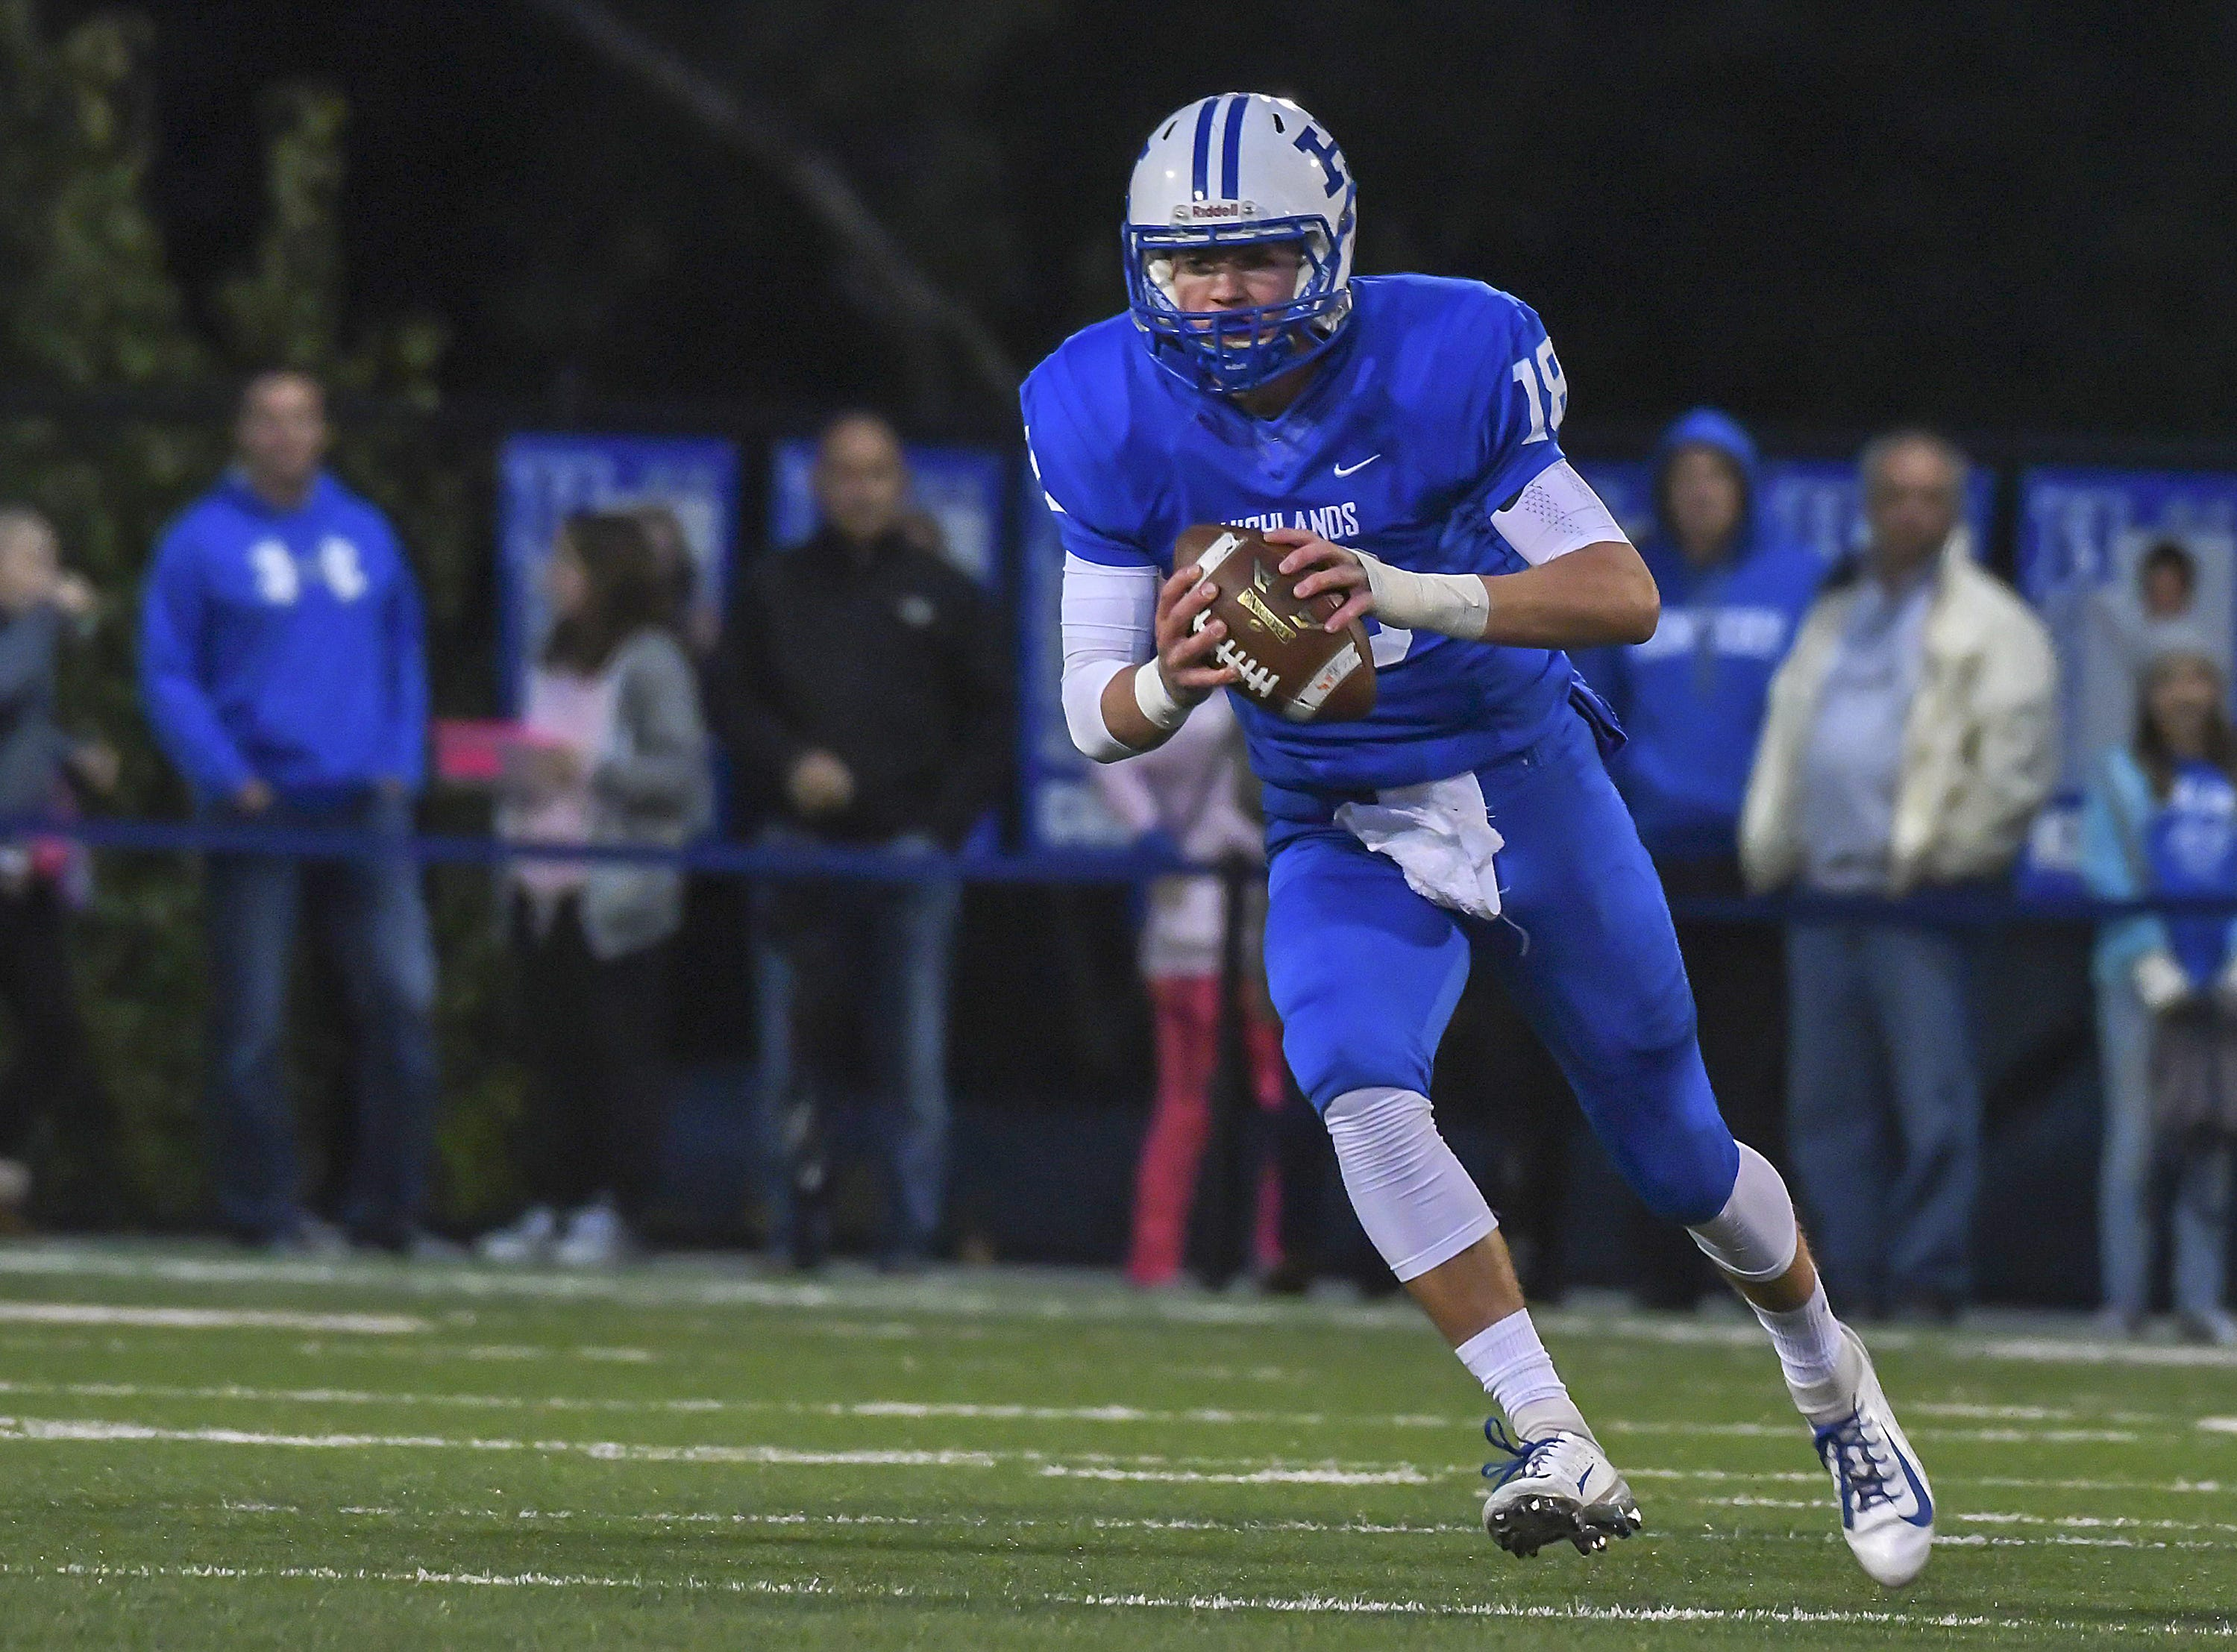 Bluebirds quarterback Grady Cramer runs the ball against the Colonels, Highlands High School, Ft. Thomas, KY, Friday, October 12, 2018